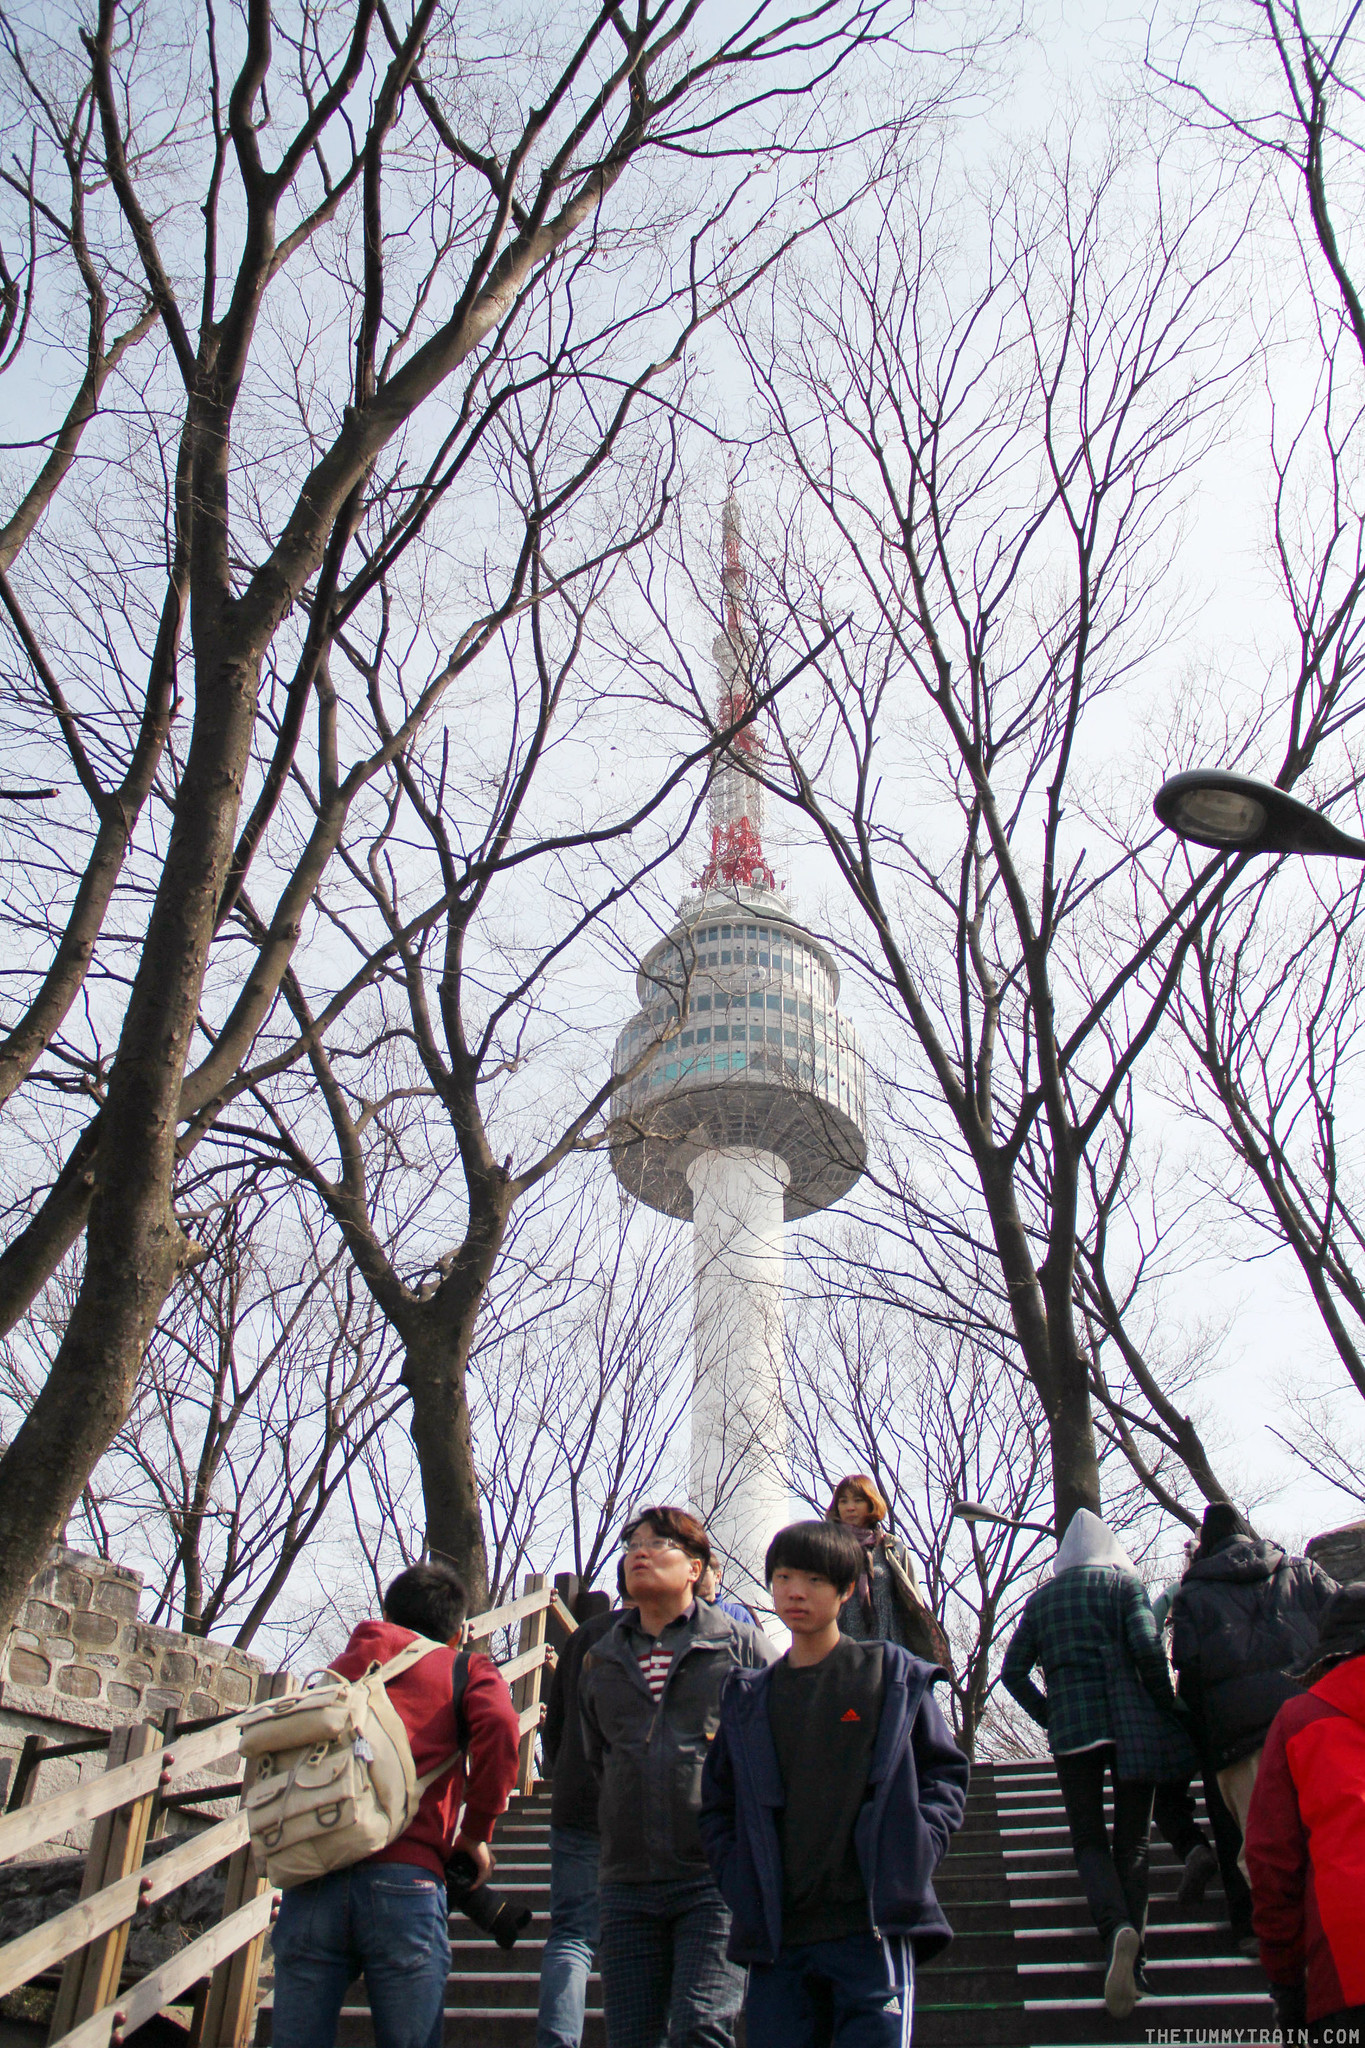 33530696486 6af479c651 k - Seoul-ful Spring 2016: Playing Lovers in Korea at N Seoul Tower